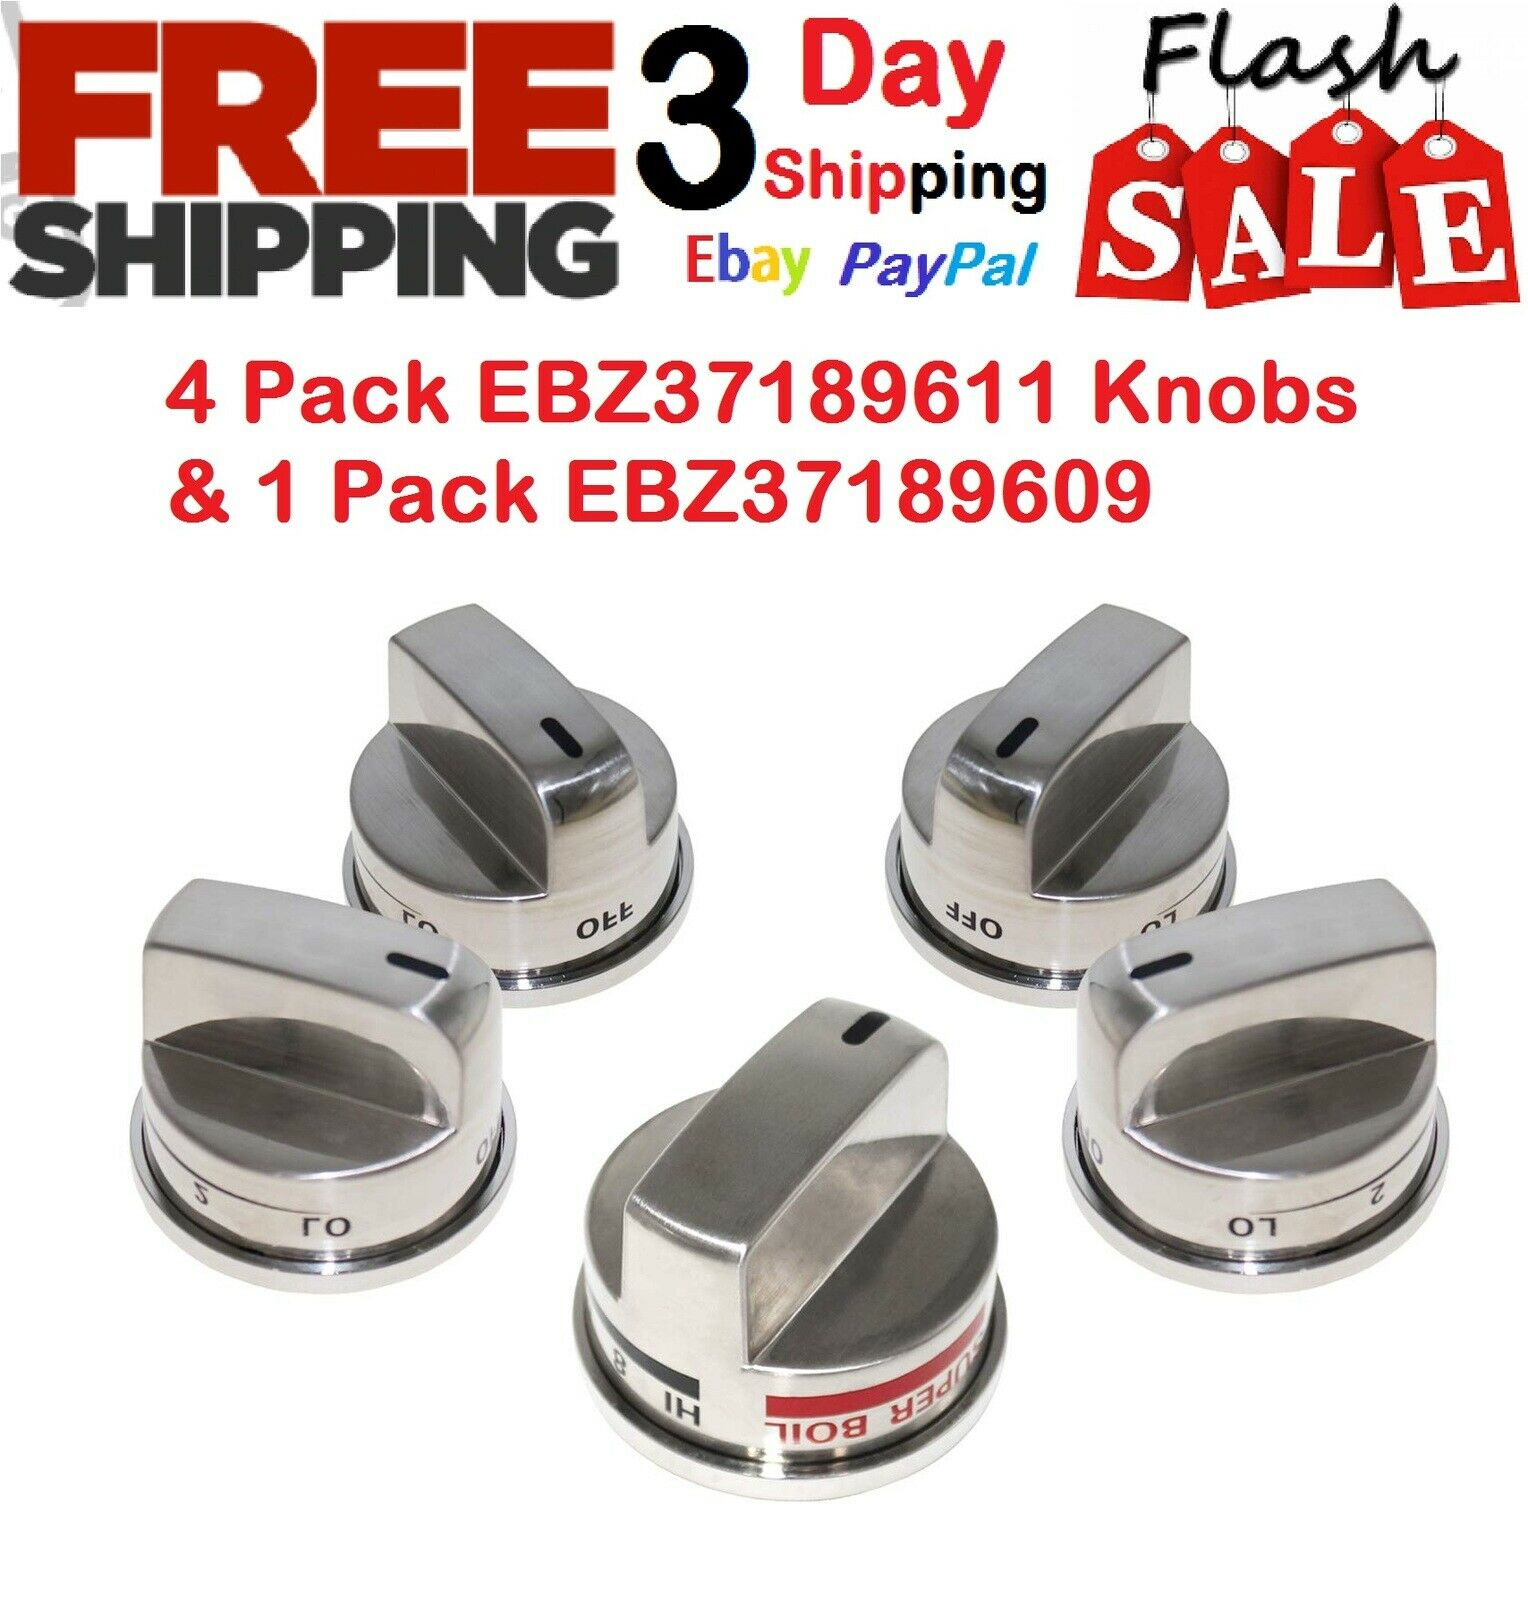 Replacement Range Knob Stainless Steel Knobs For LG Gas Stov